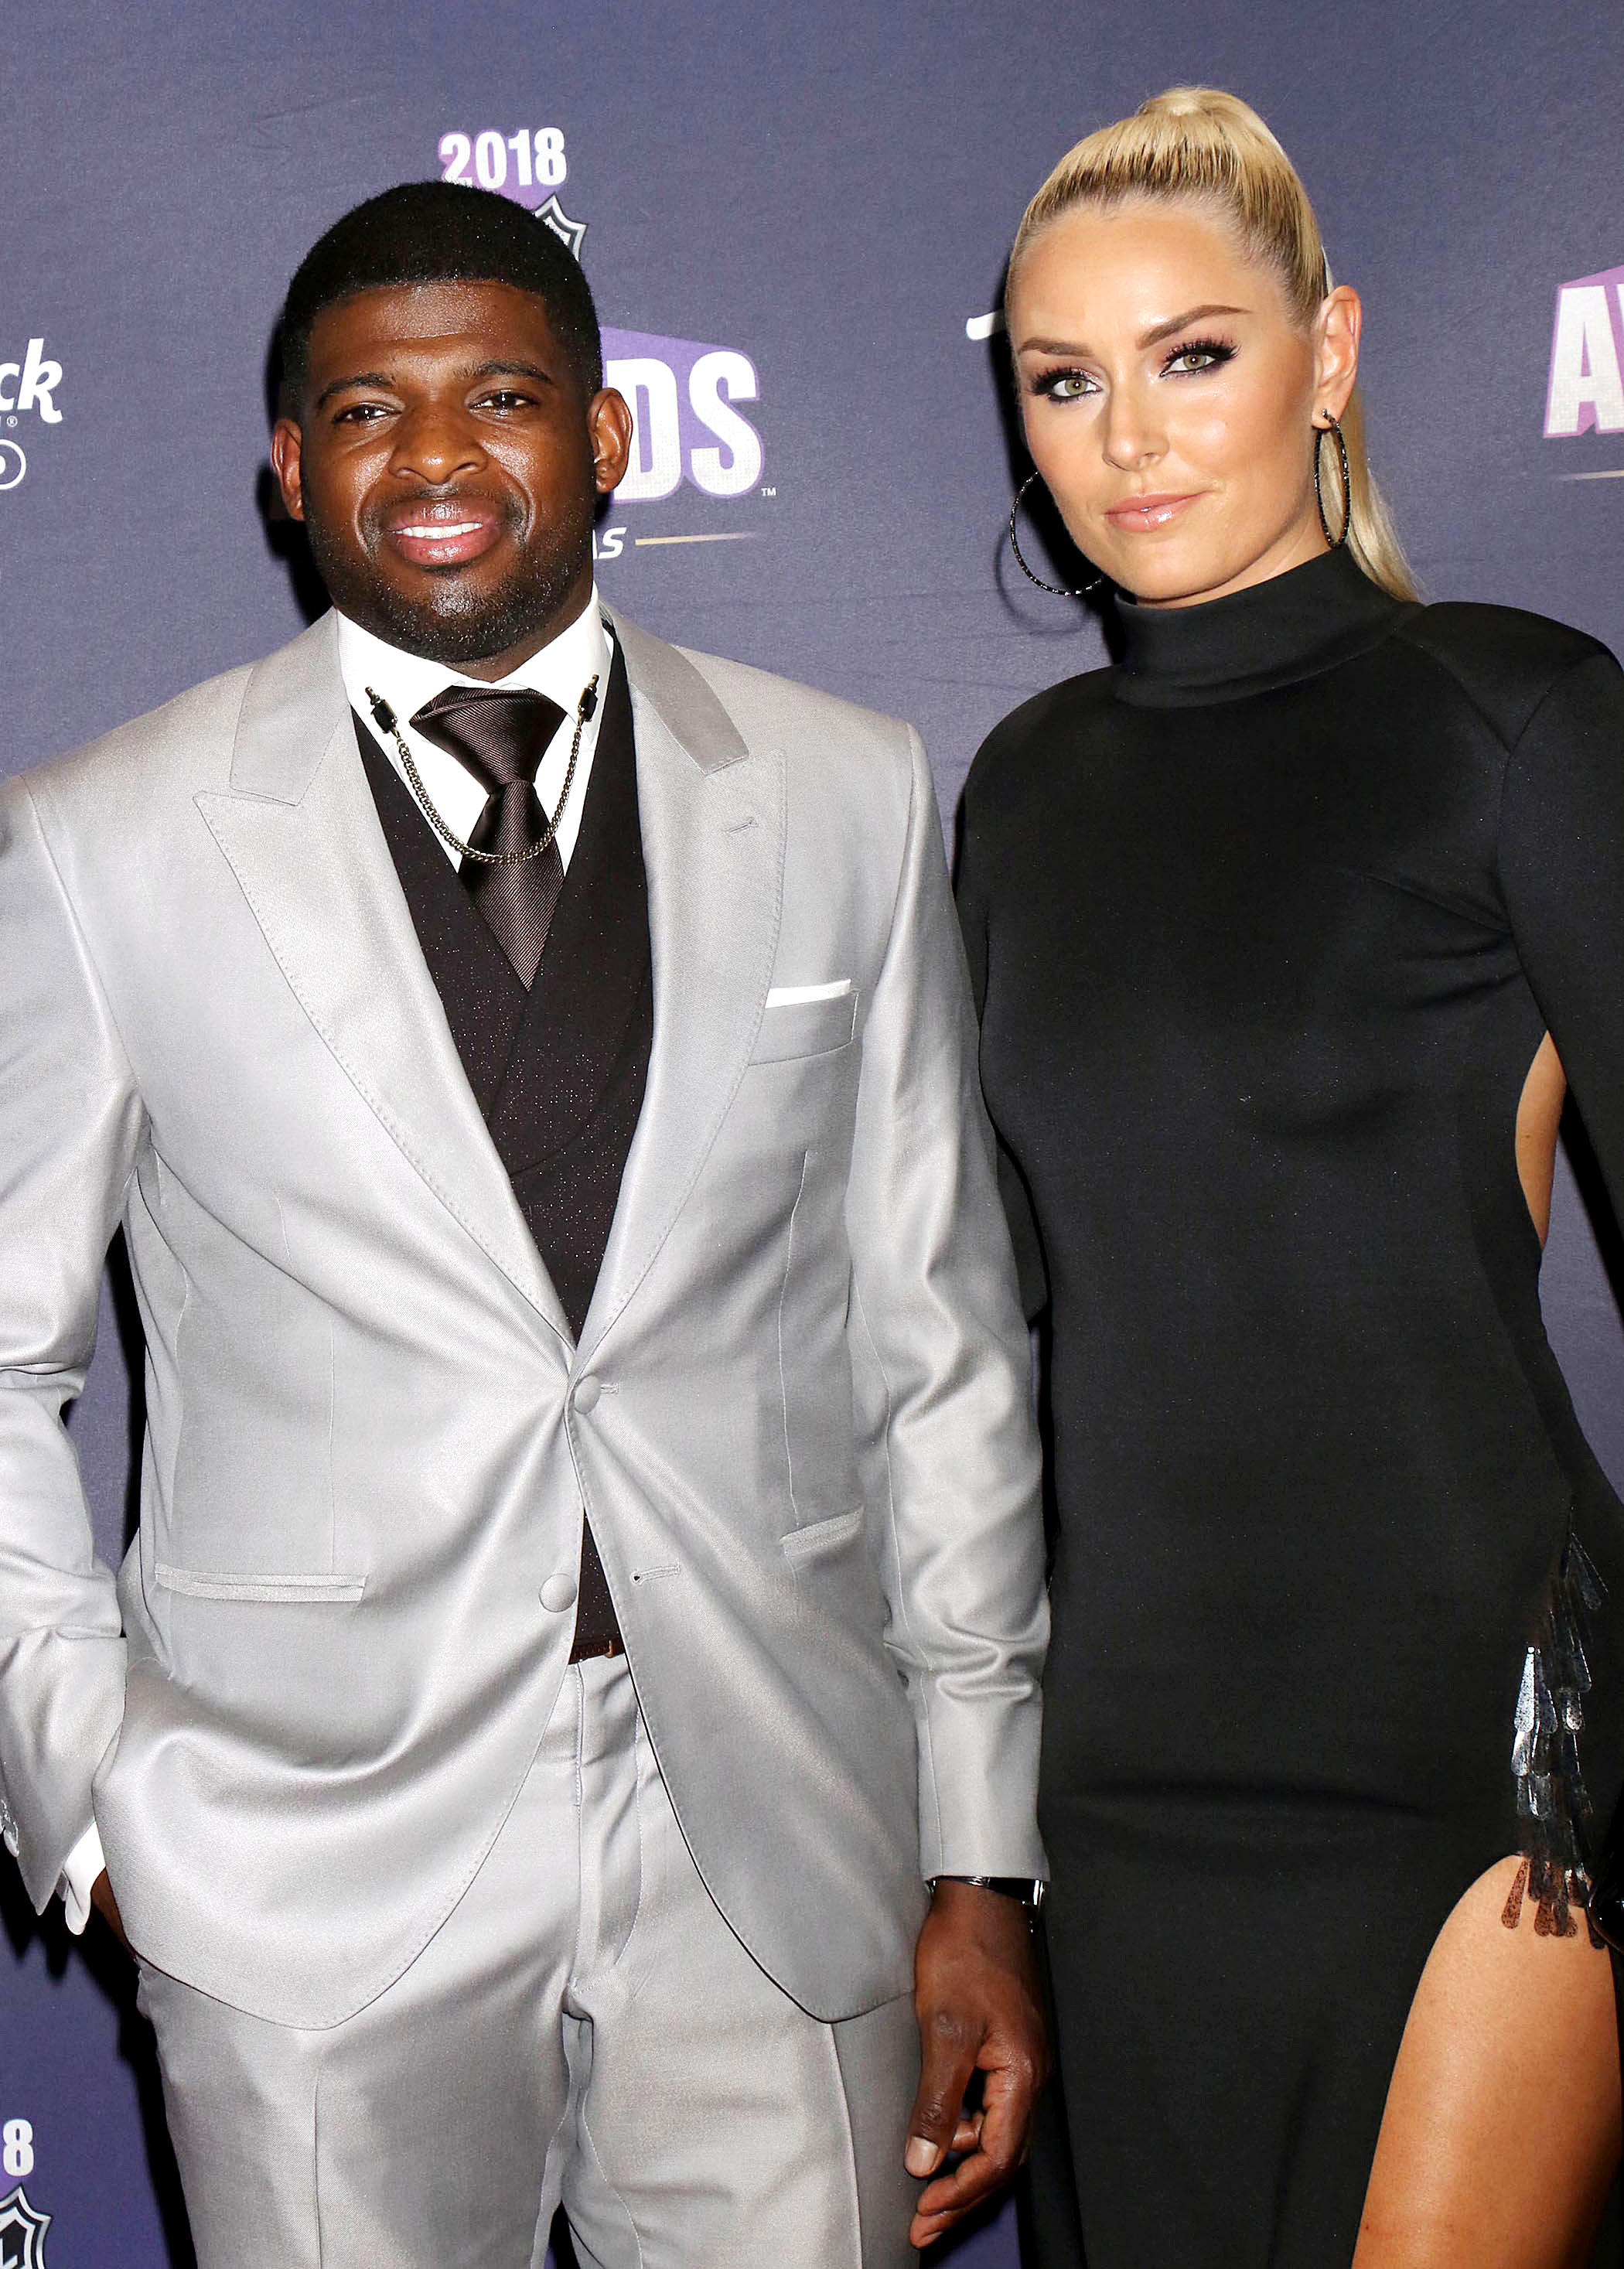 Wedding Bells! Lindsey Vonn and P.K. Subban Are Engaged thumbnail